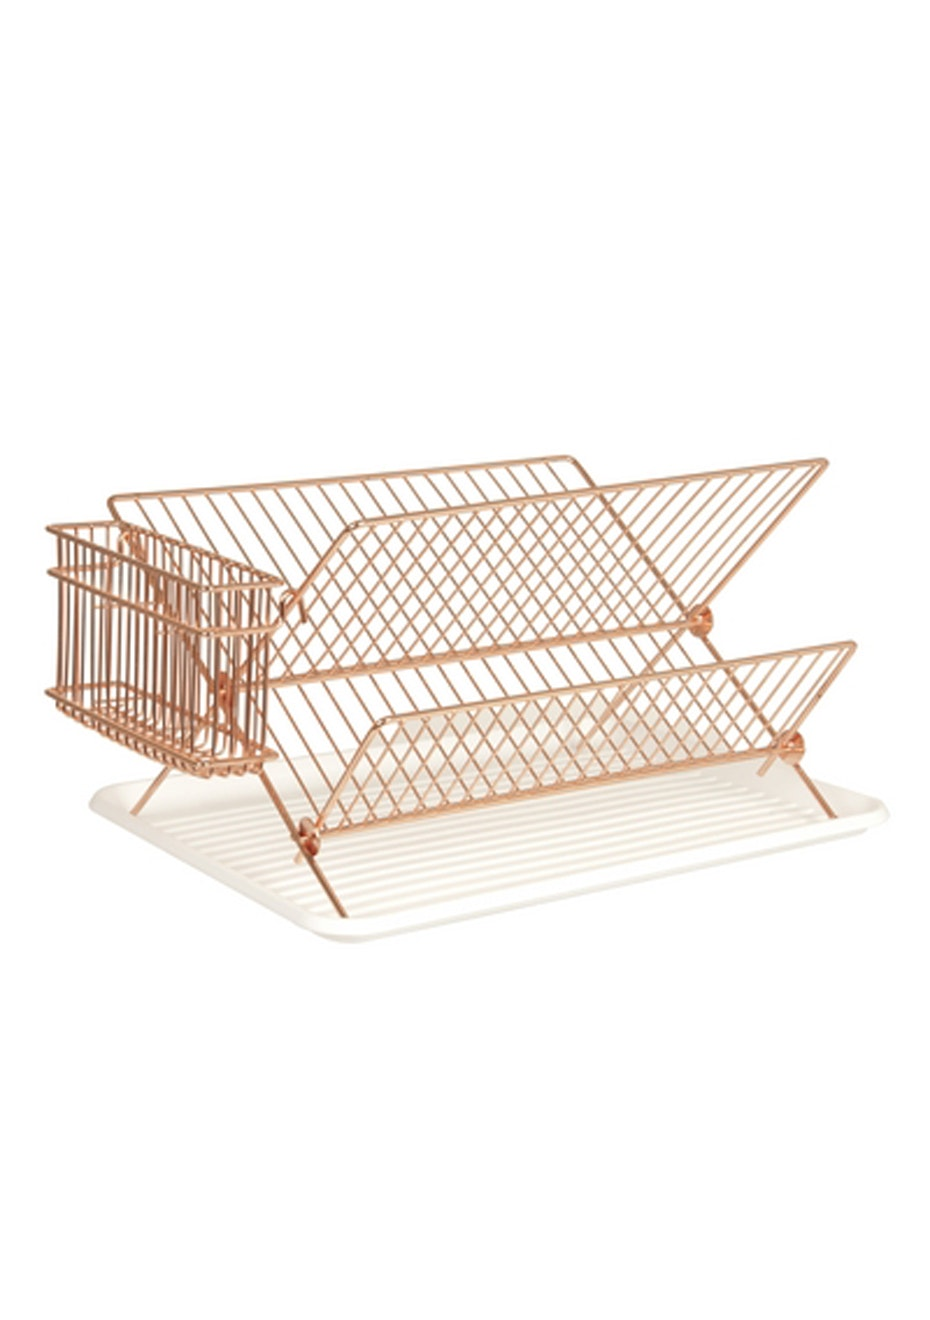 Pt Home - Dish Rack - Copper